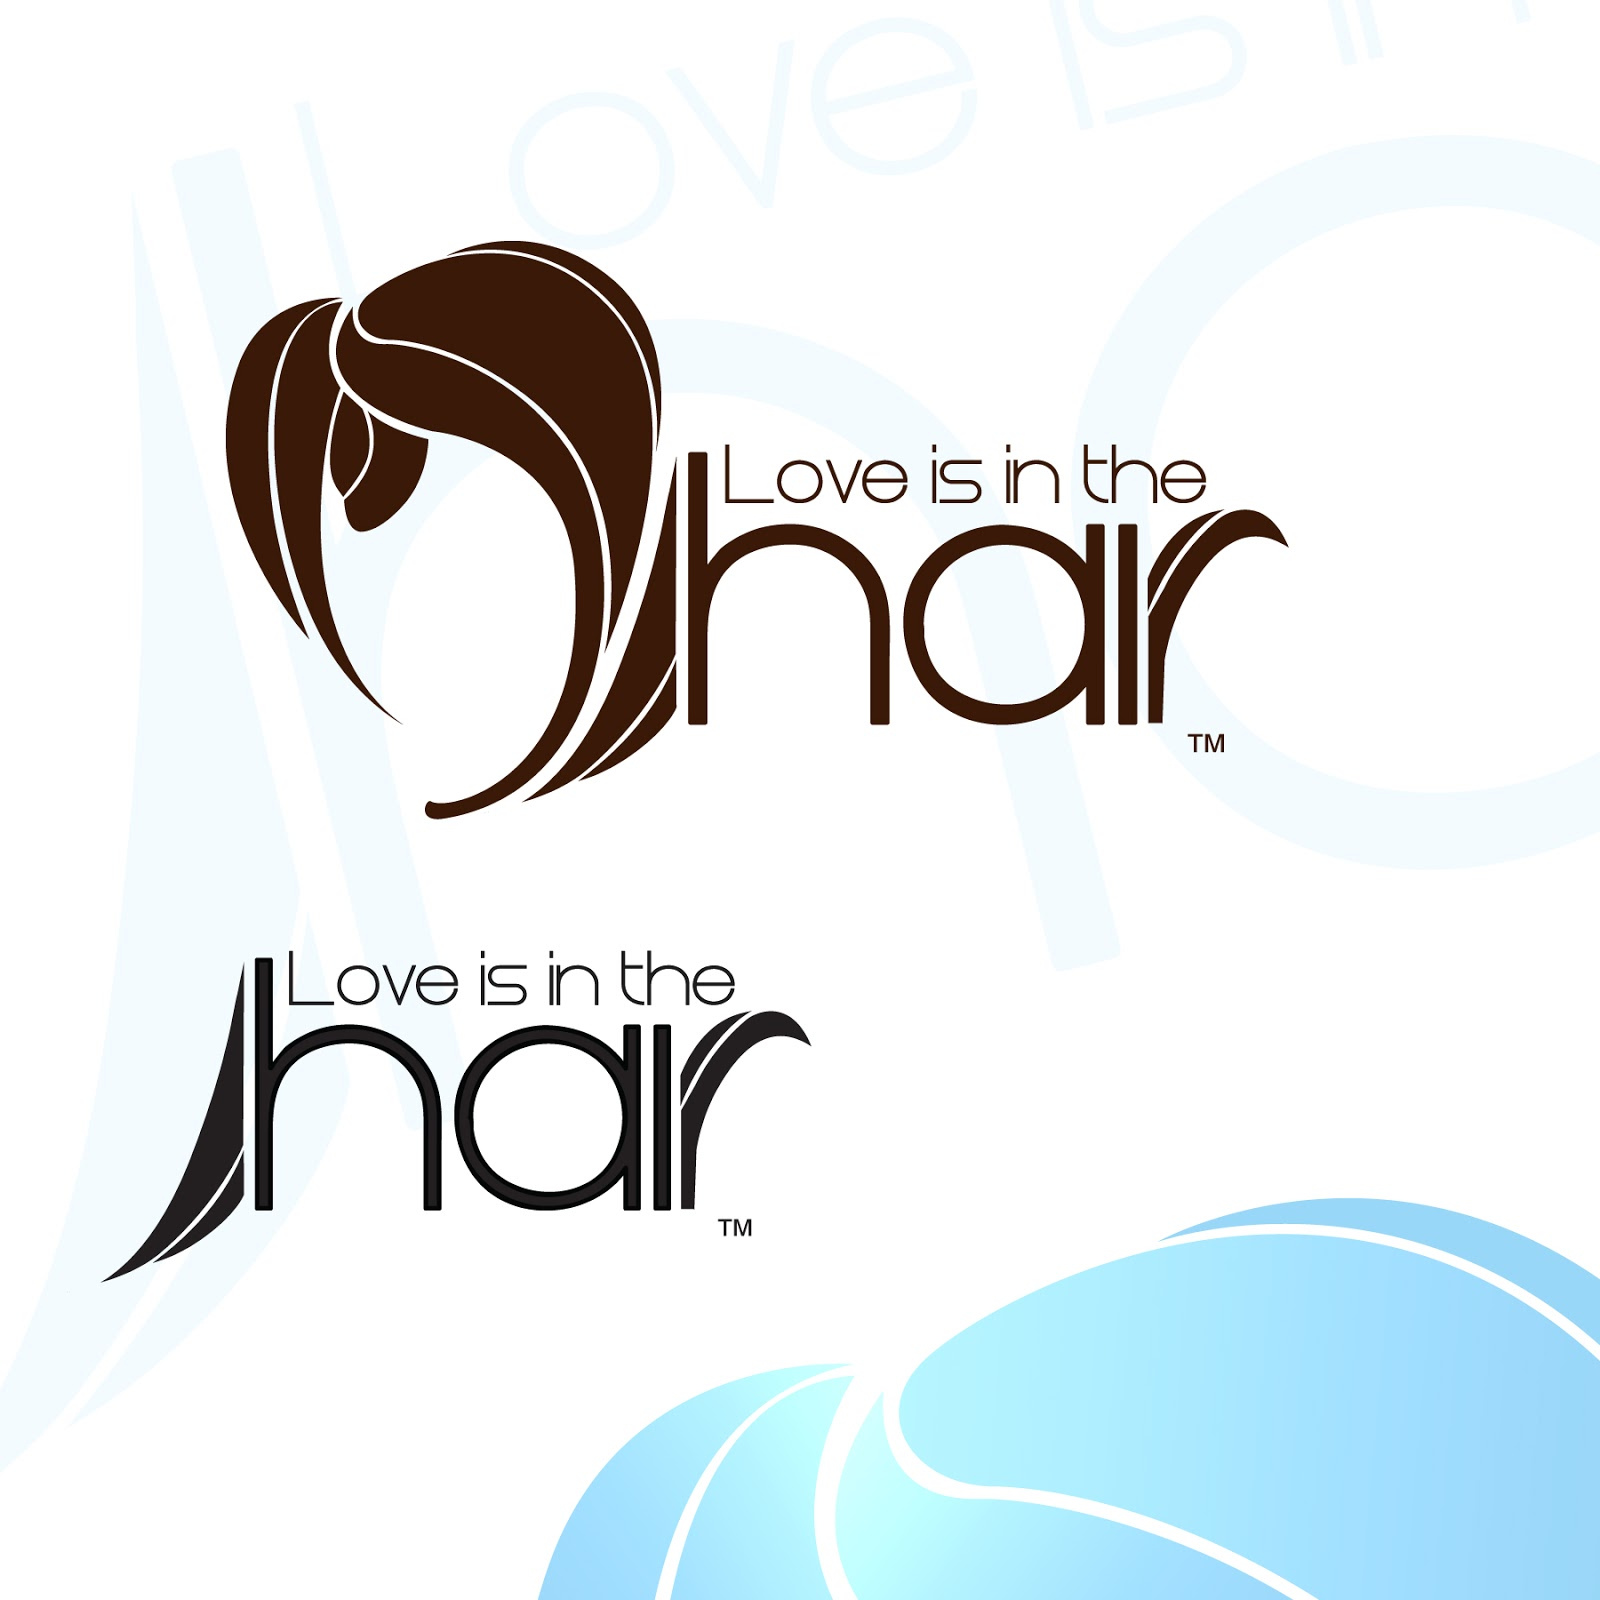 very popular logo hair logo images